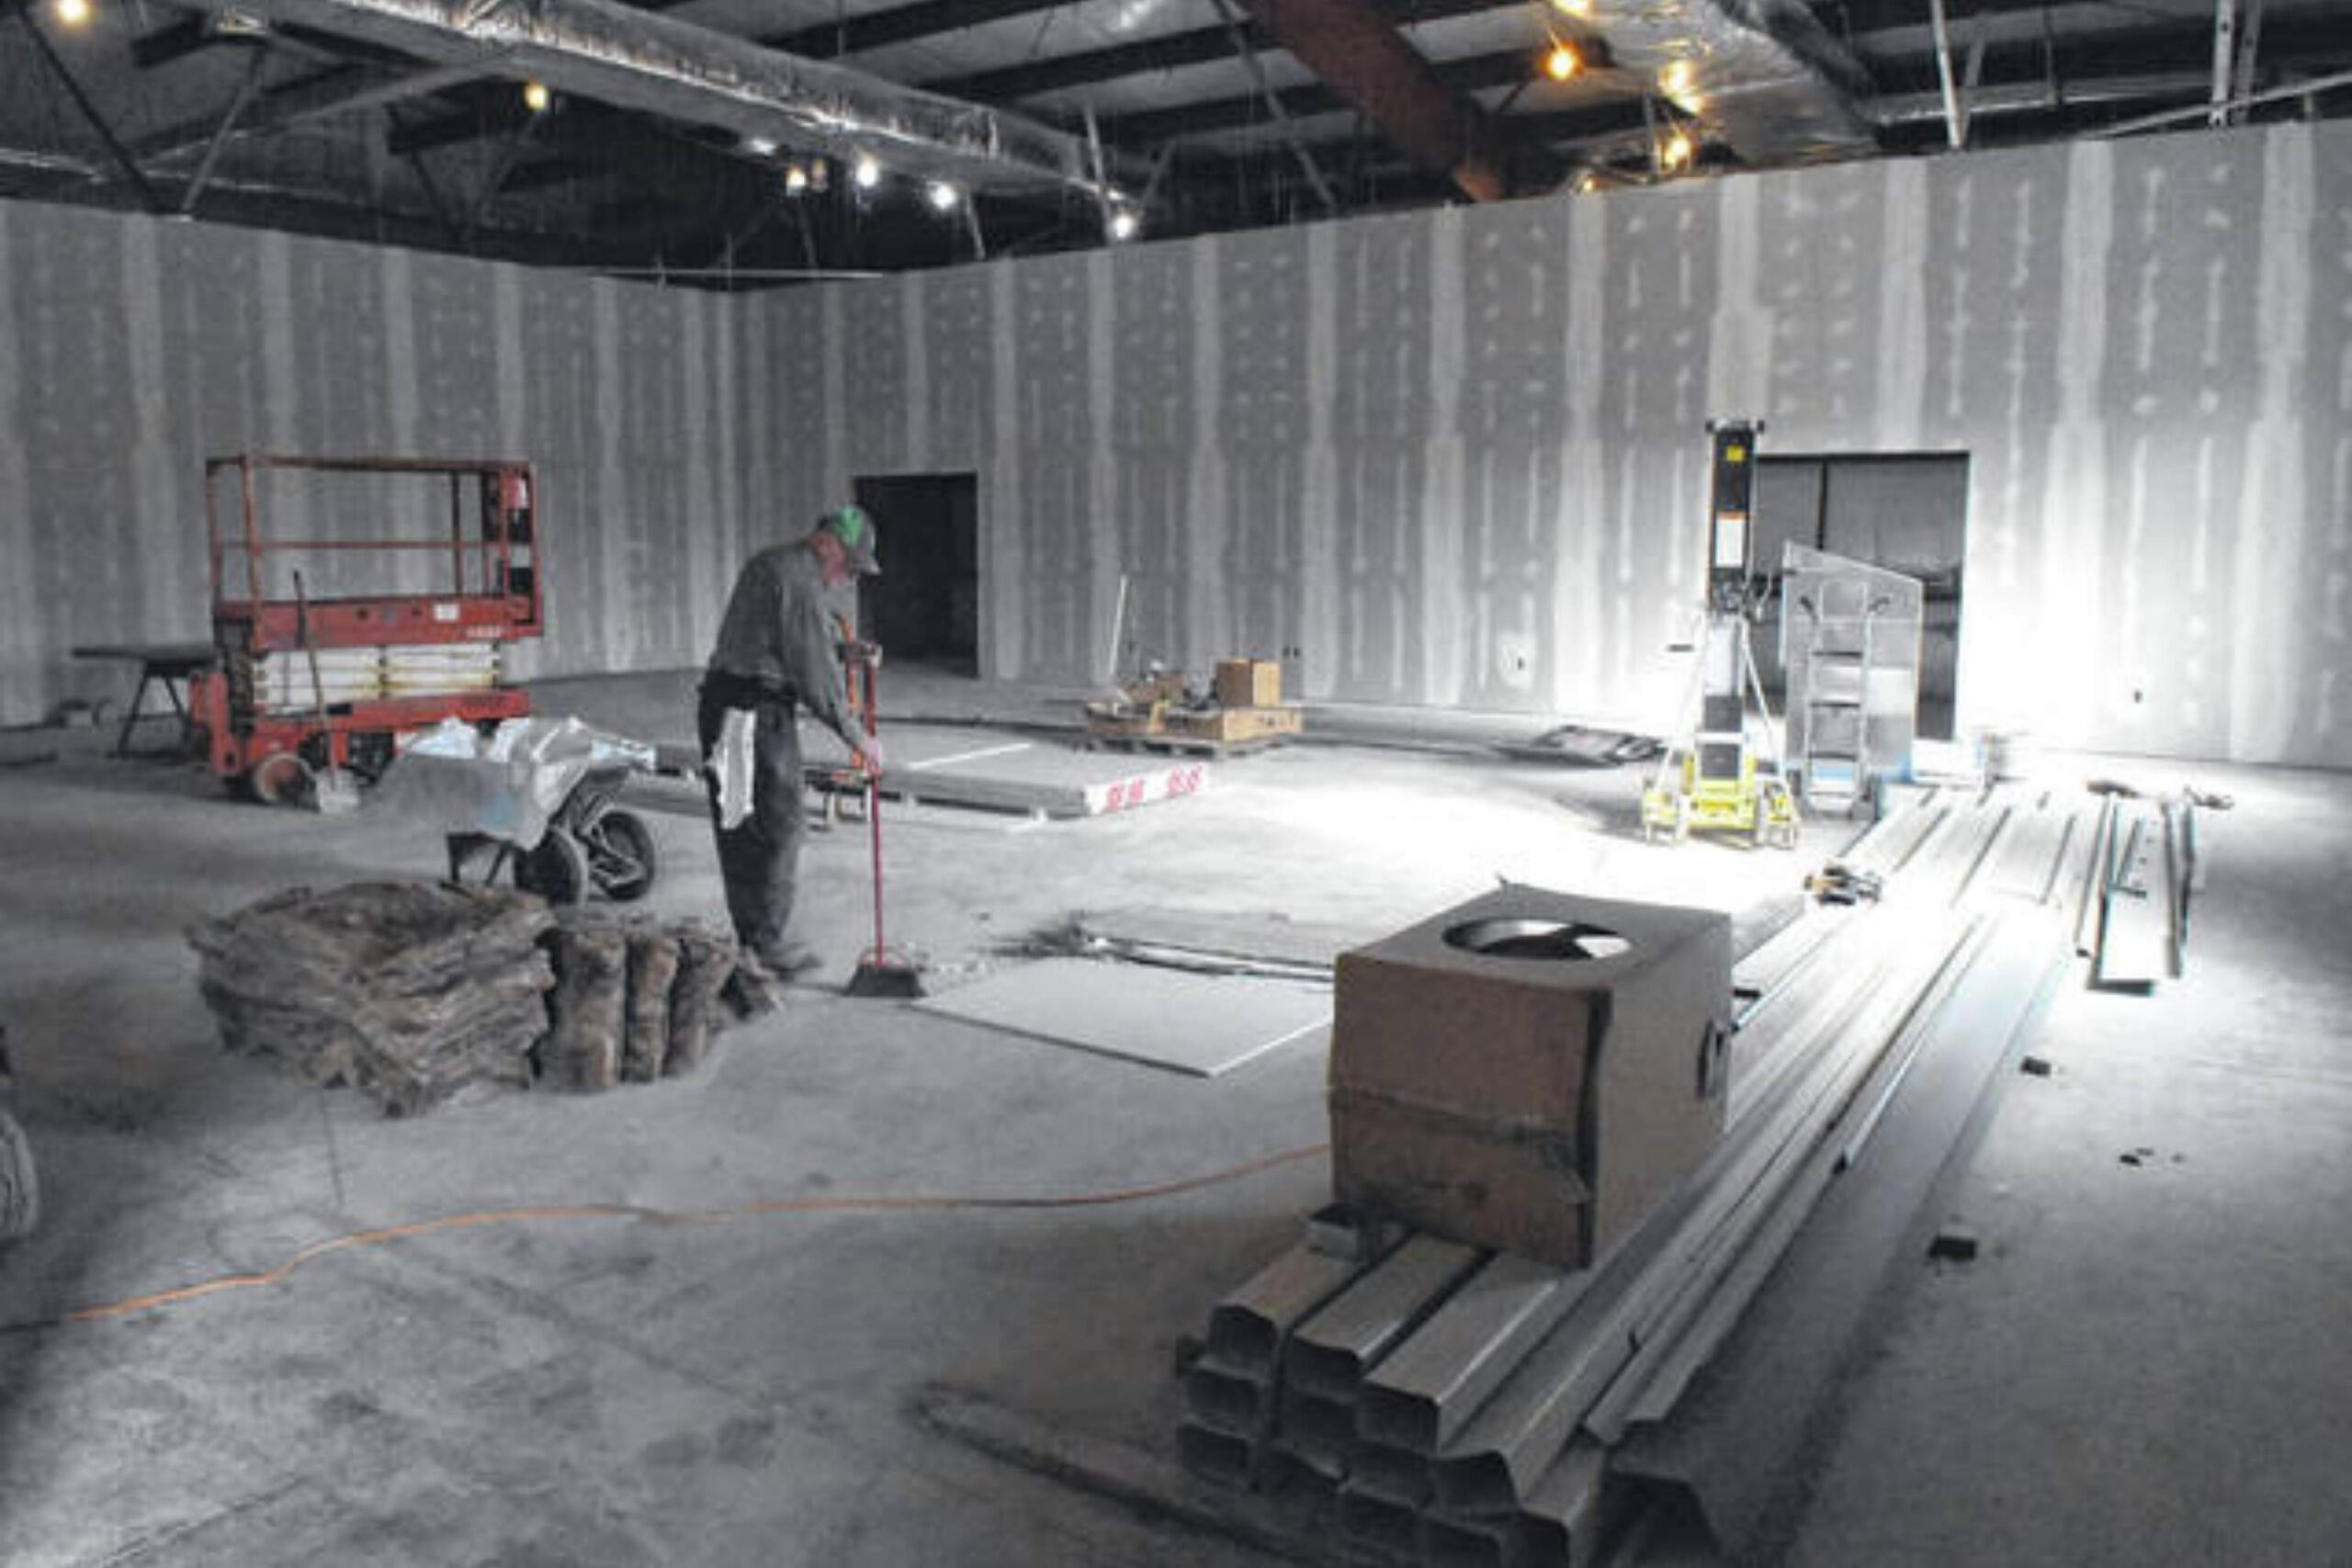 Conference Center Under Construction